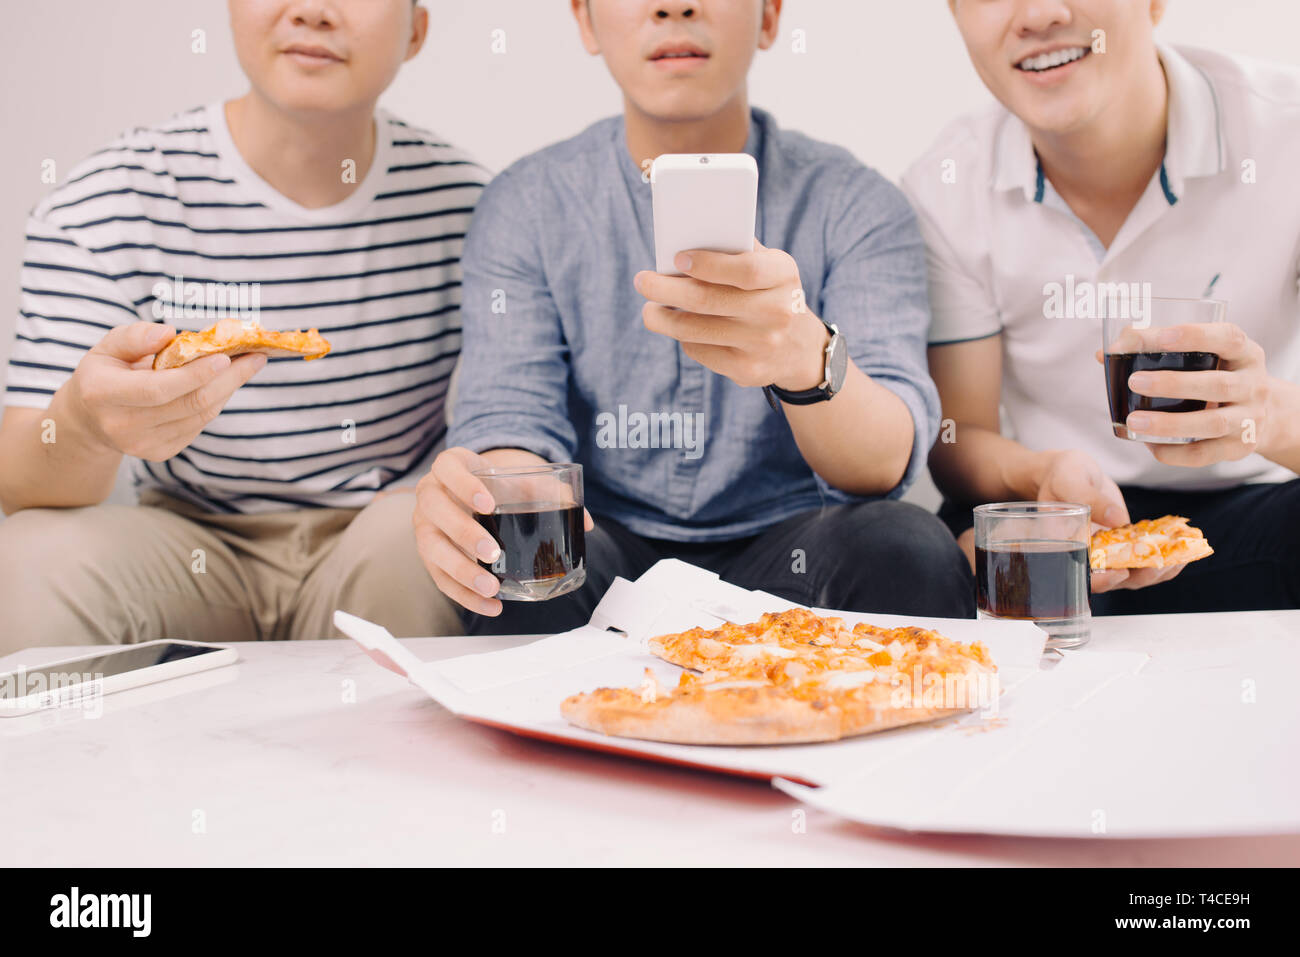 Group of friends eating pizza and watching tv - Stock Image